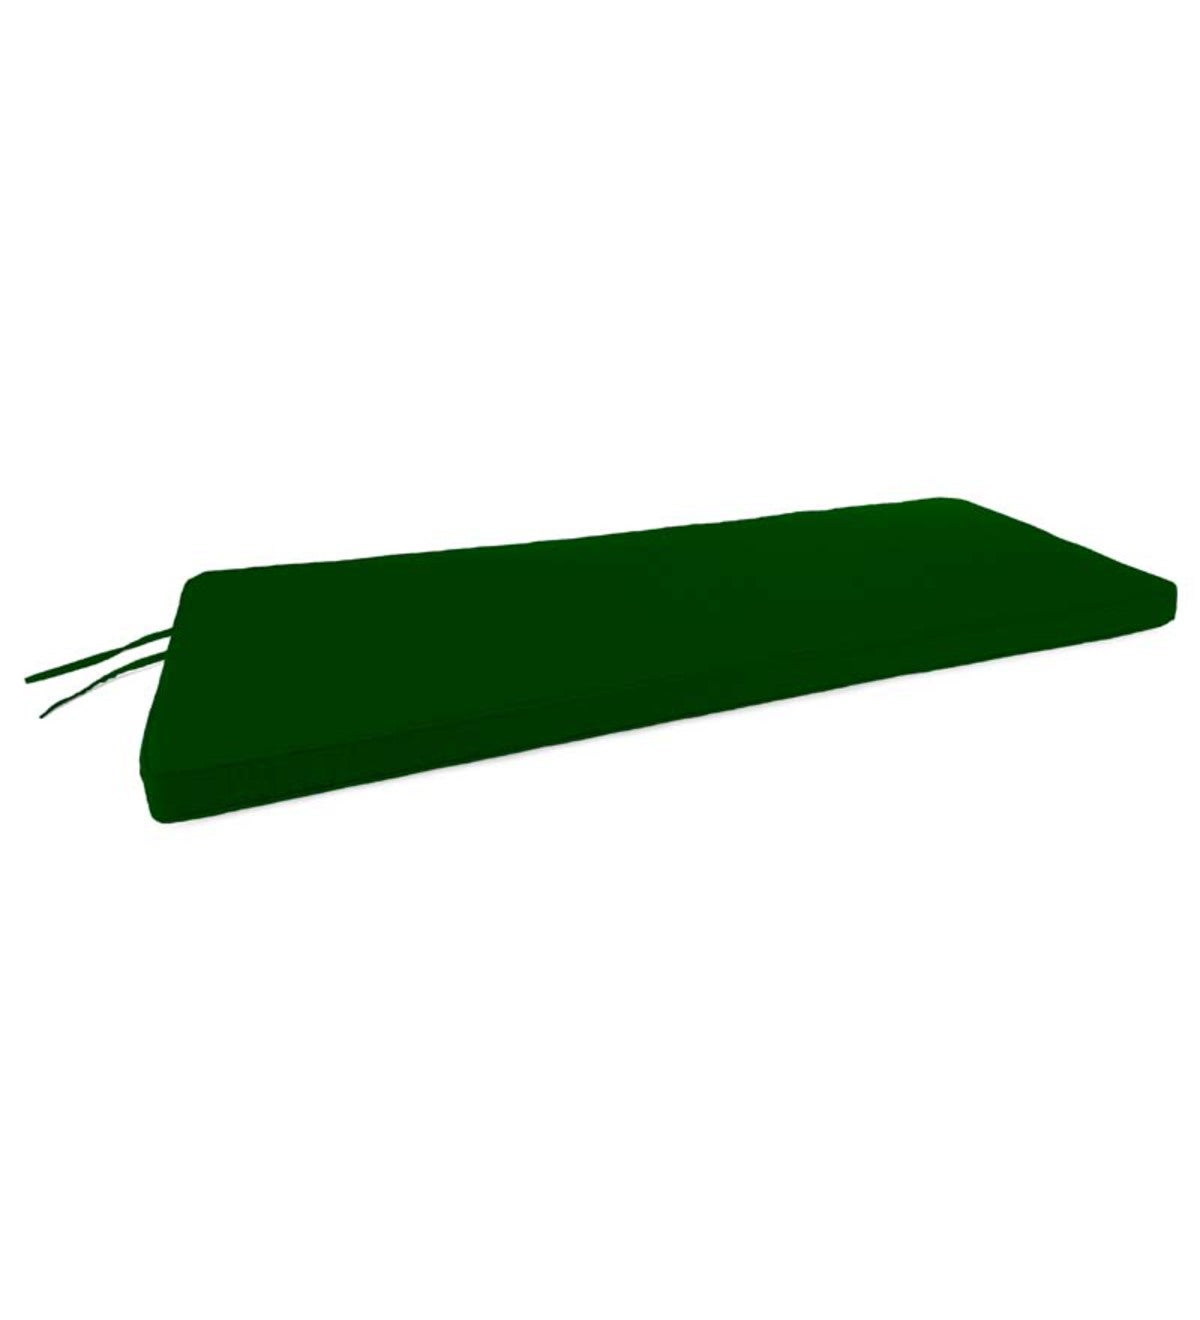 "Polyester Deluxe Swing/Bench Cushion With Ties, 44""x 18""x 2½"" - Forest Green"